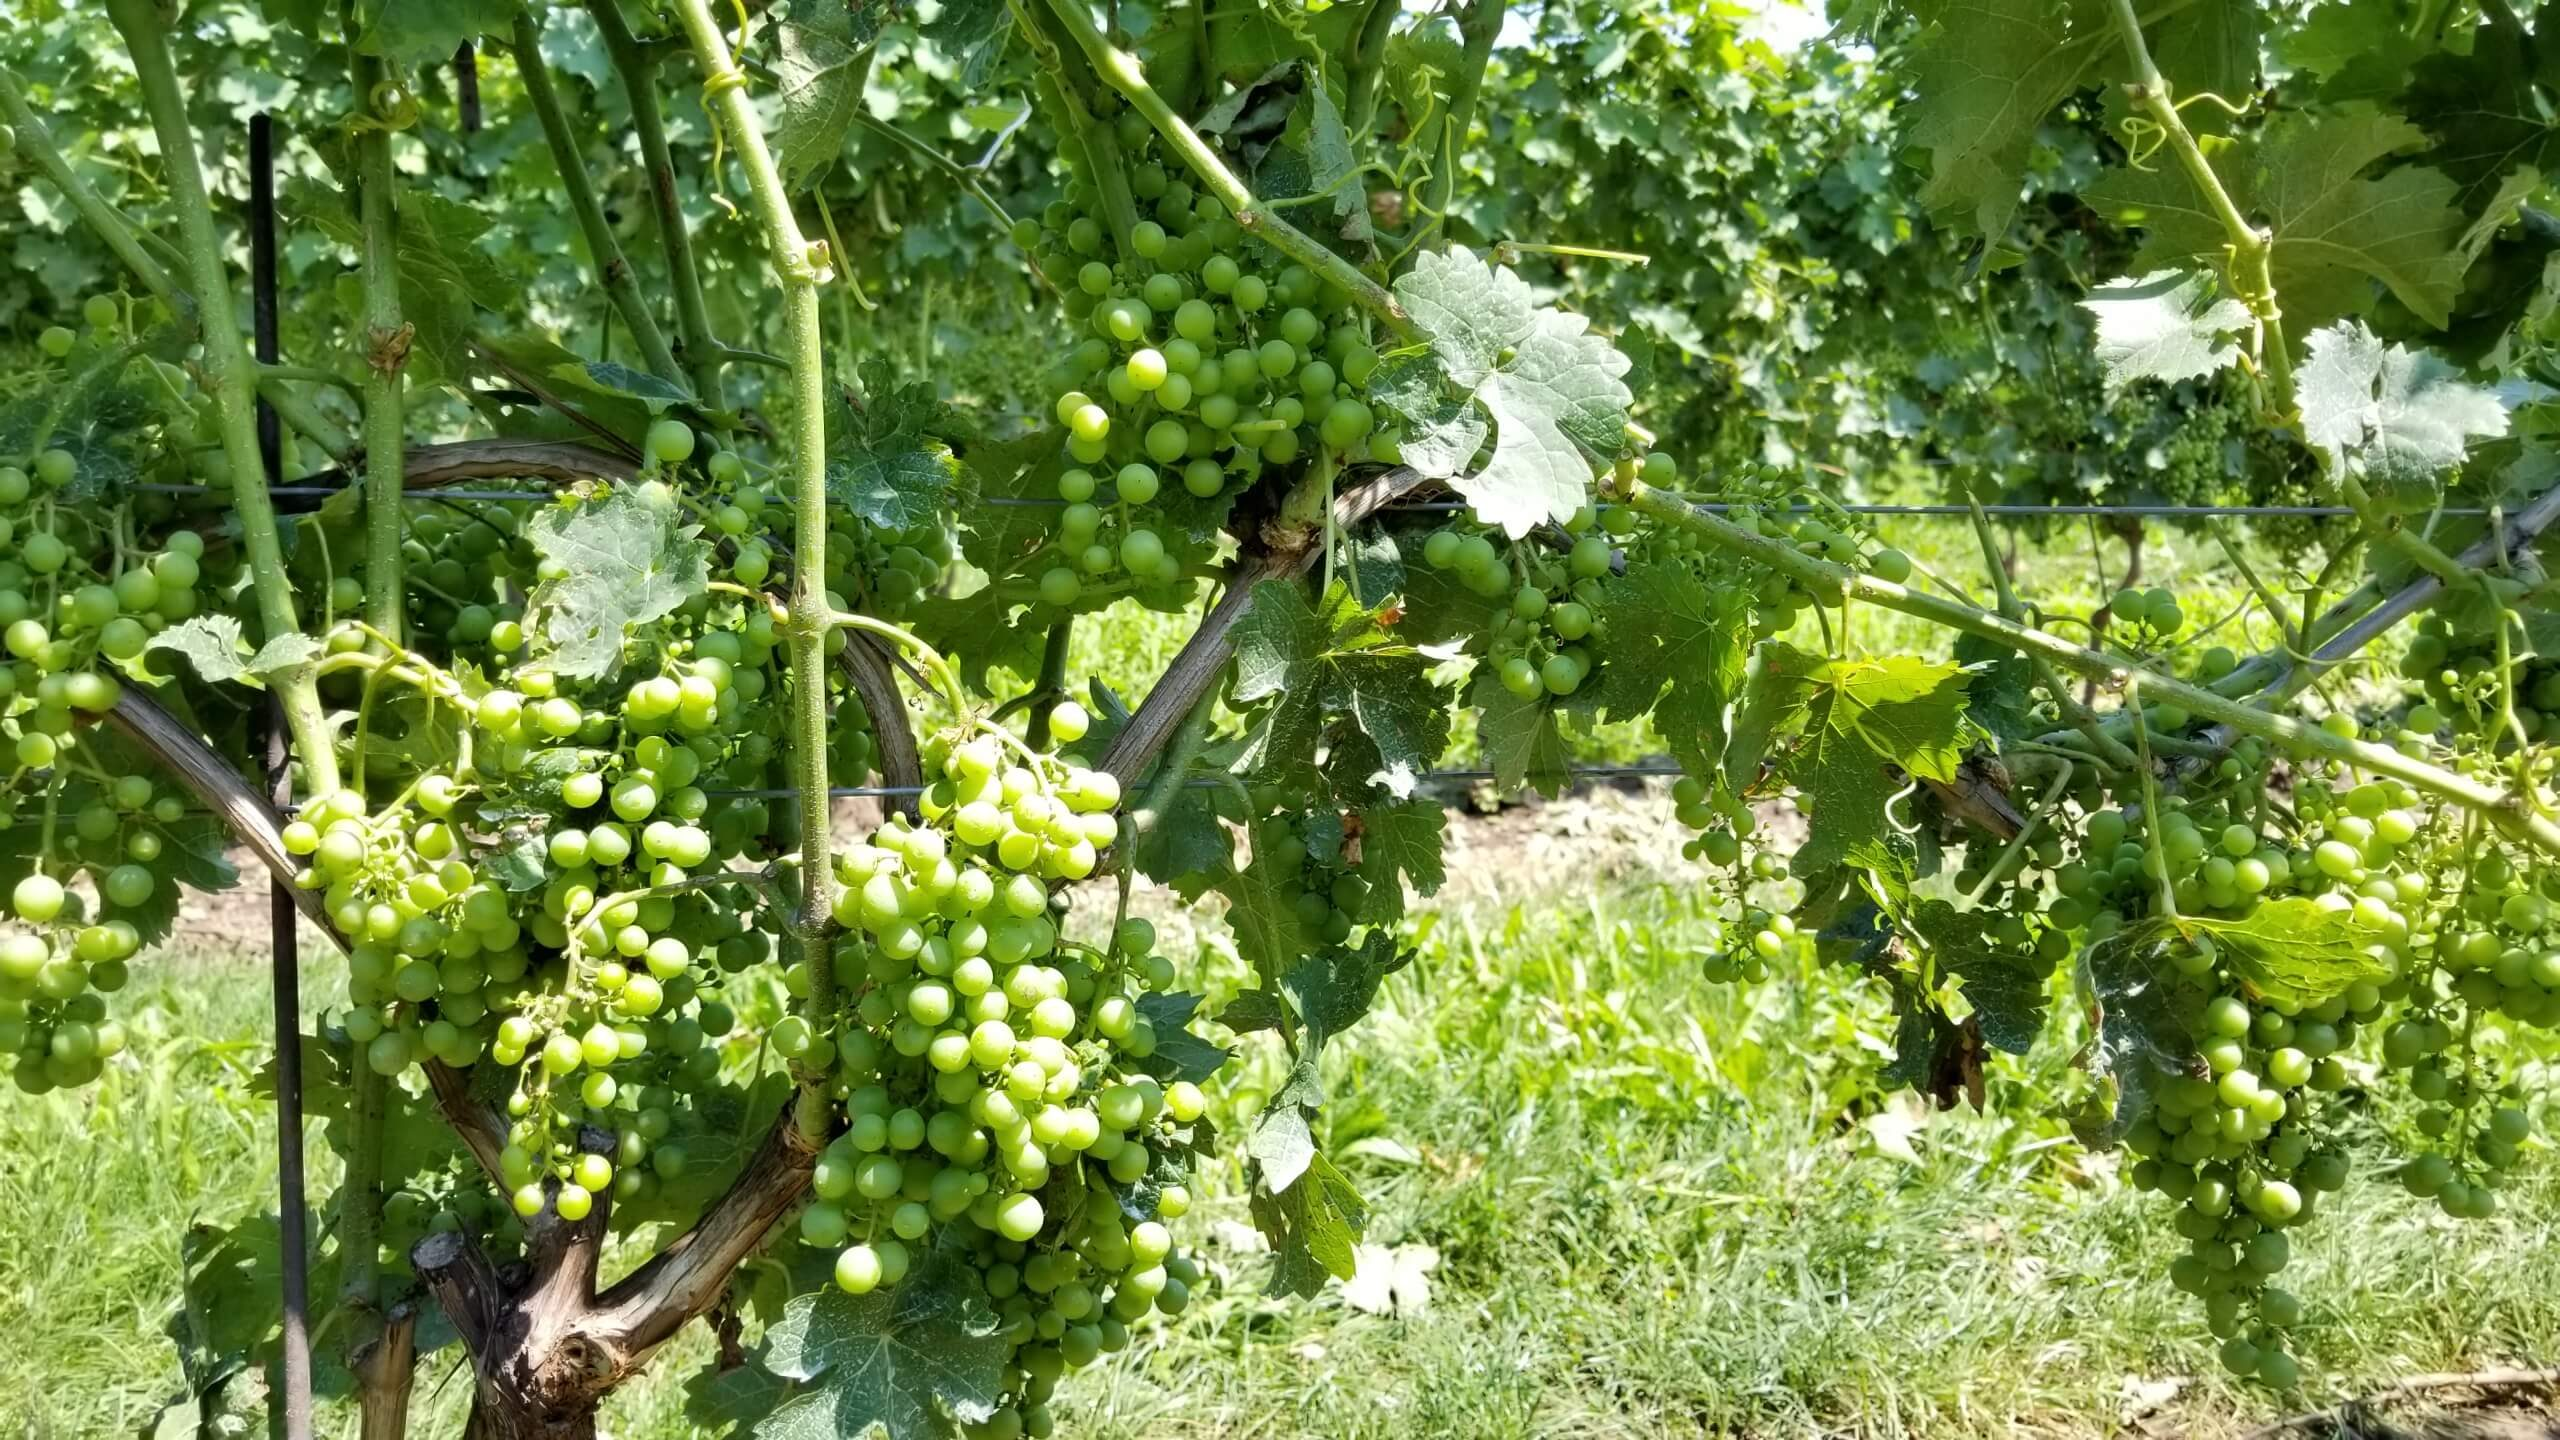 Green Wine Grapes on Vine